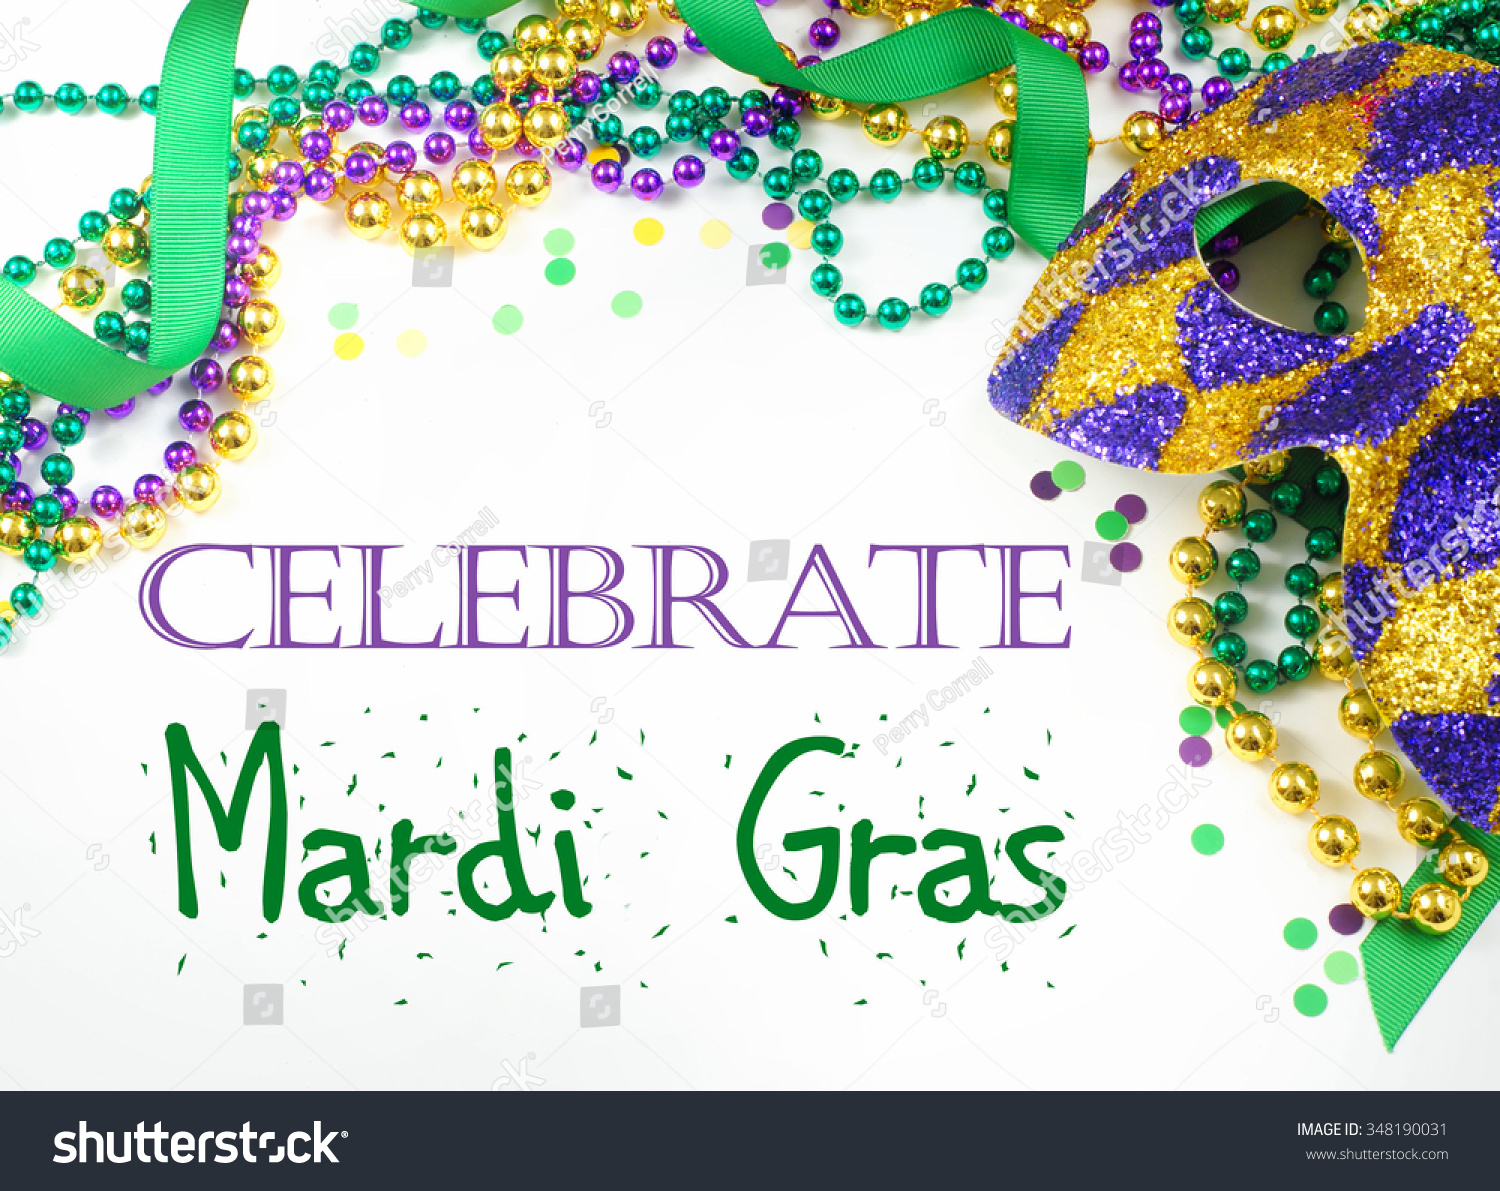 scepter poster funny mardi vector and stock roots beads image party with gras carnival masks confetti glasses